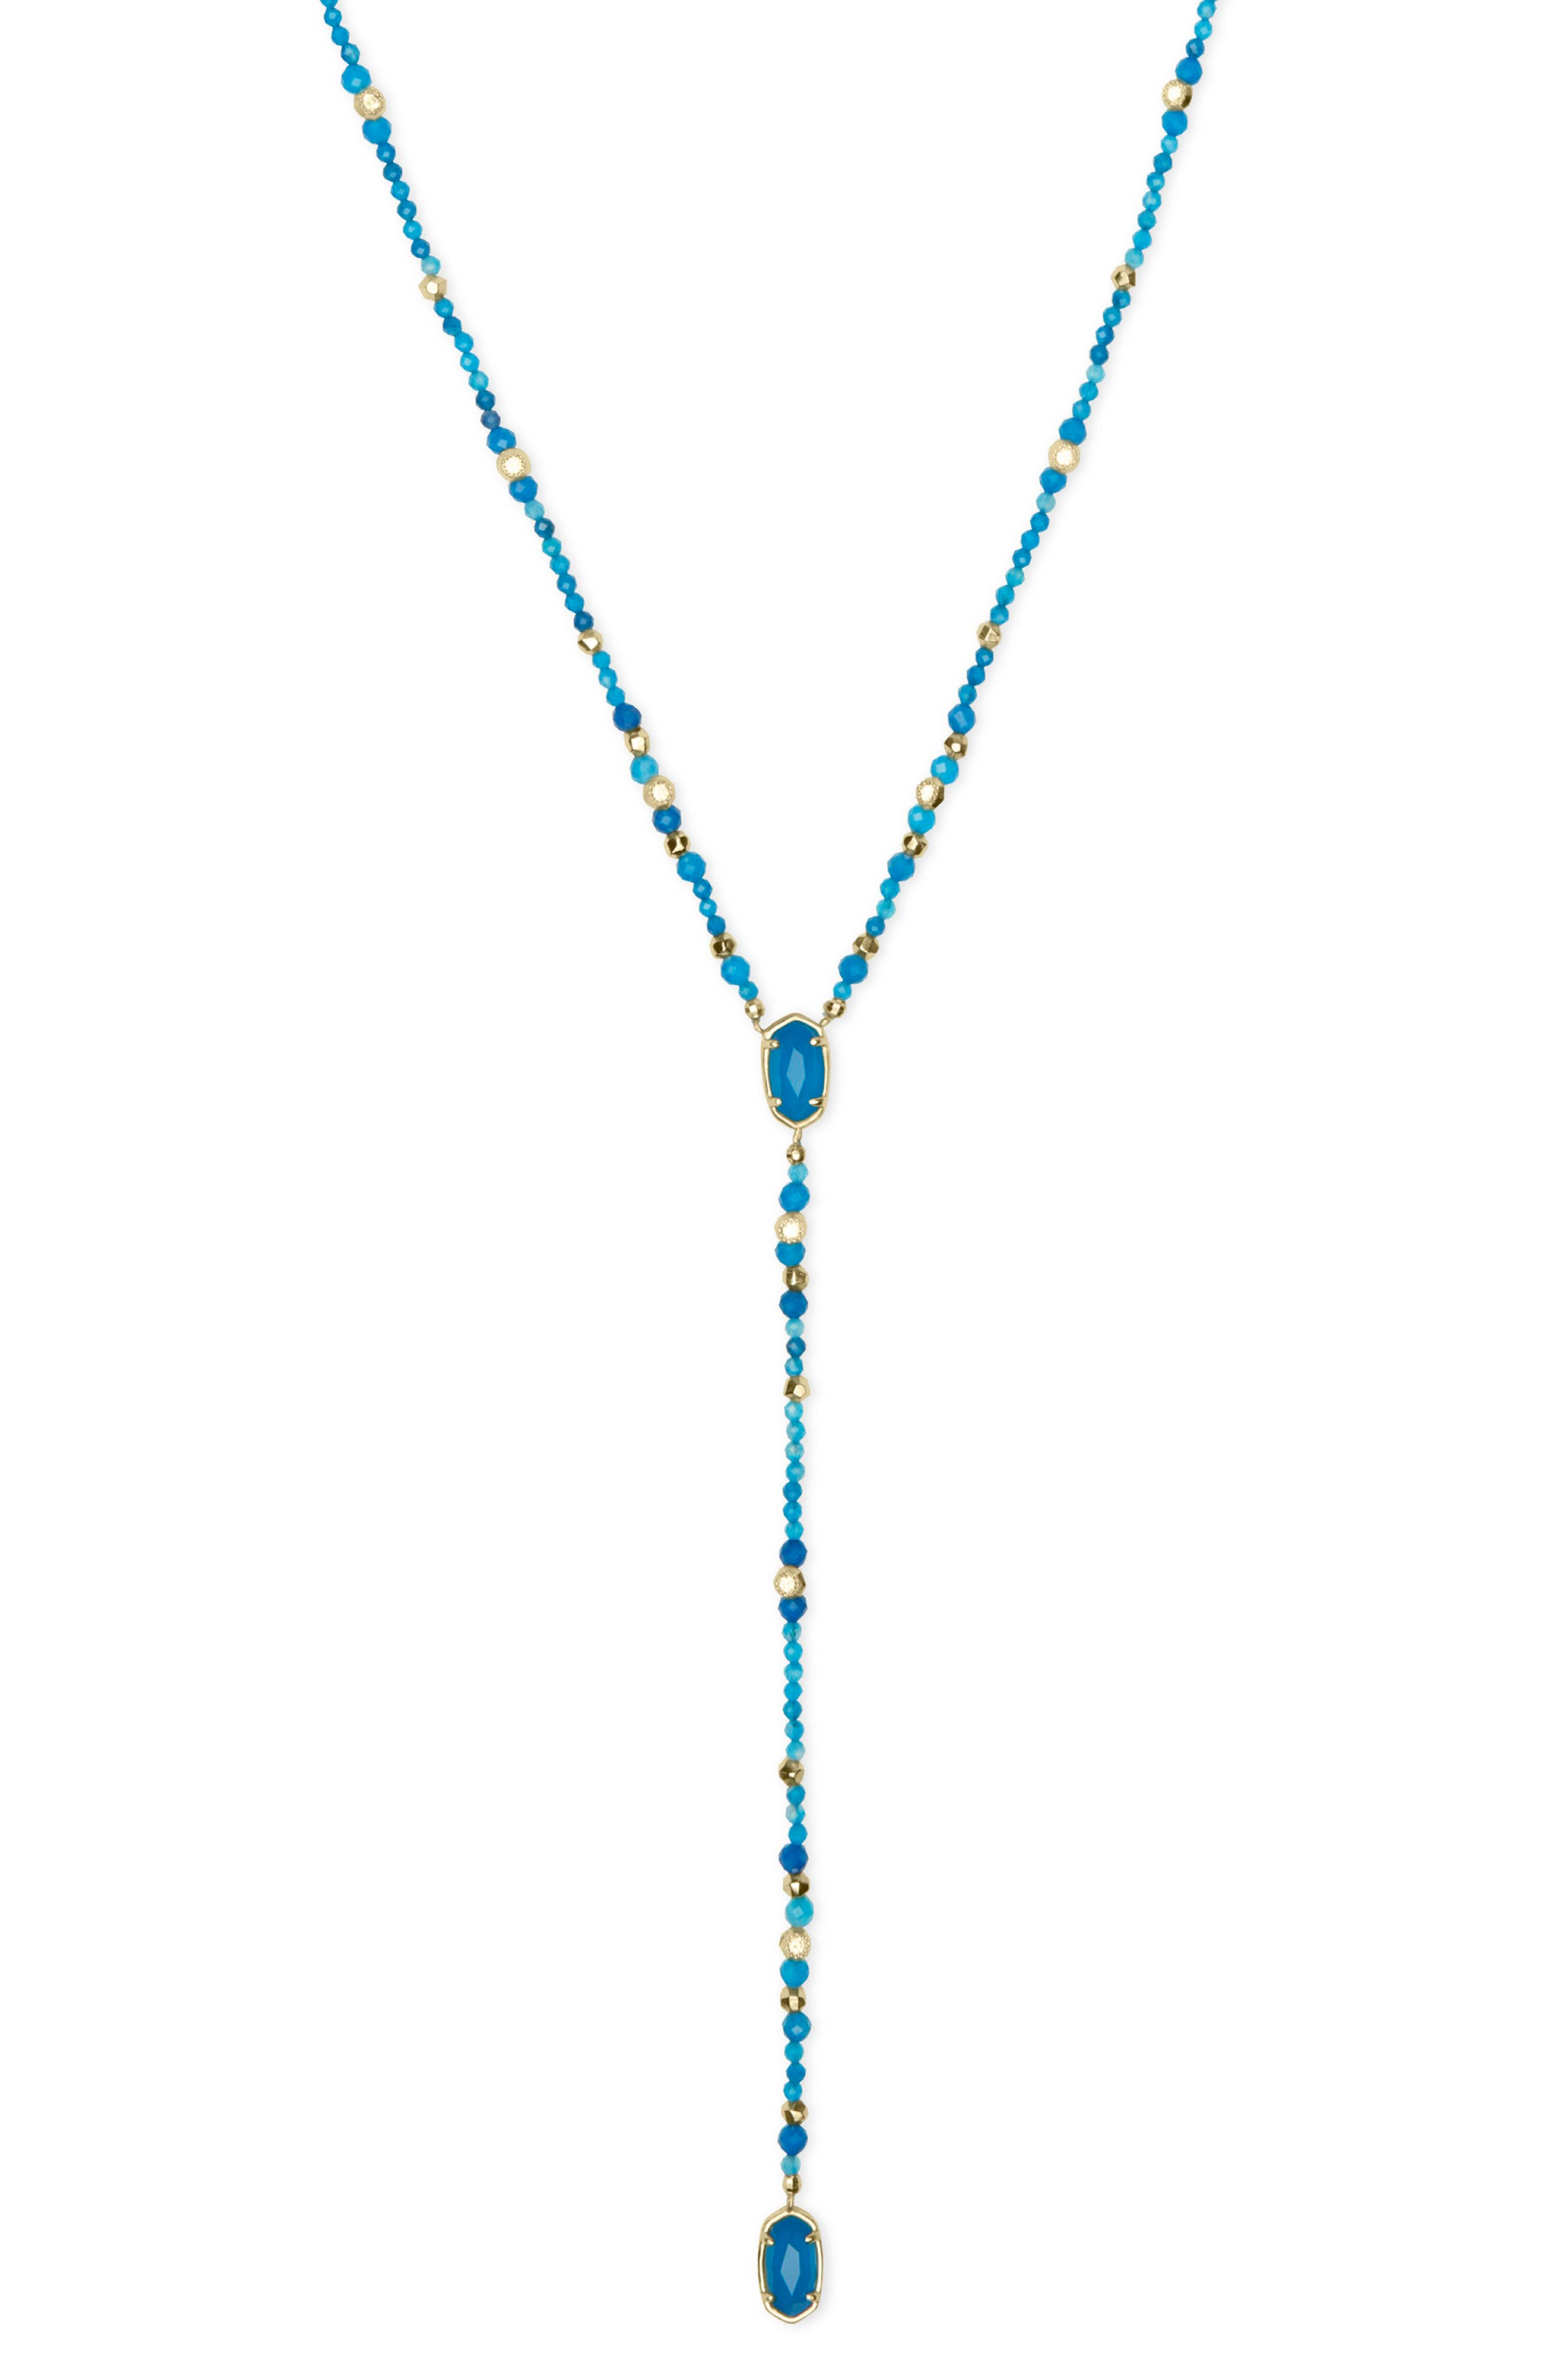 Bethany Y-Shaped Necklace,                             Alternate thumbnail 3, color,                             TEAL UNBANDED AGATE/ GOLD